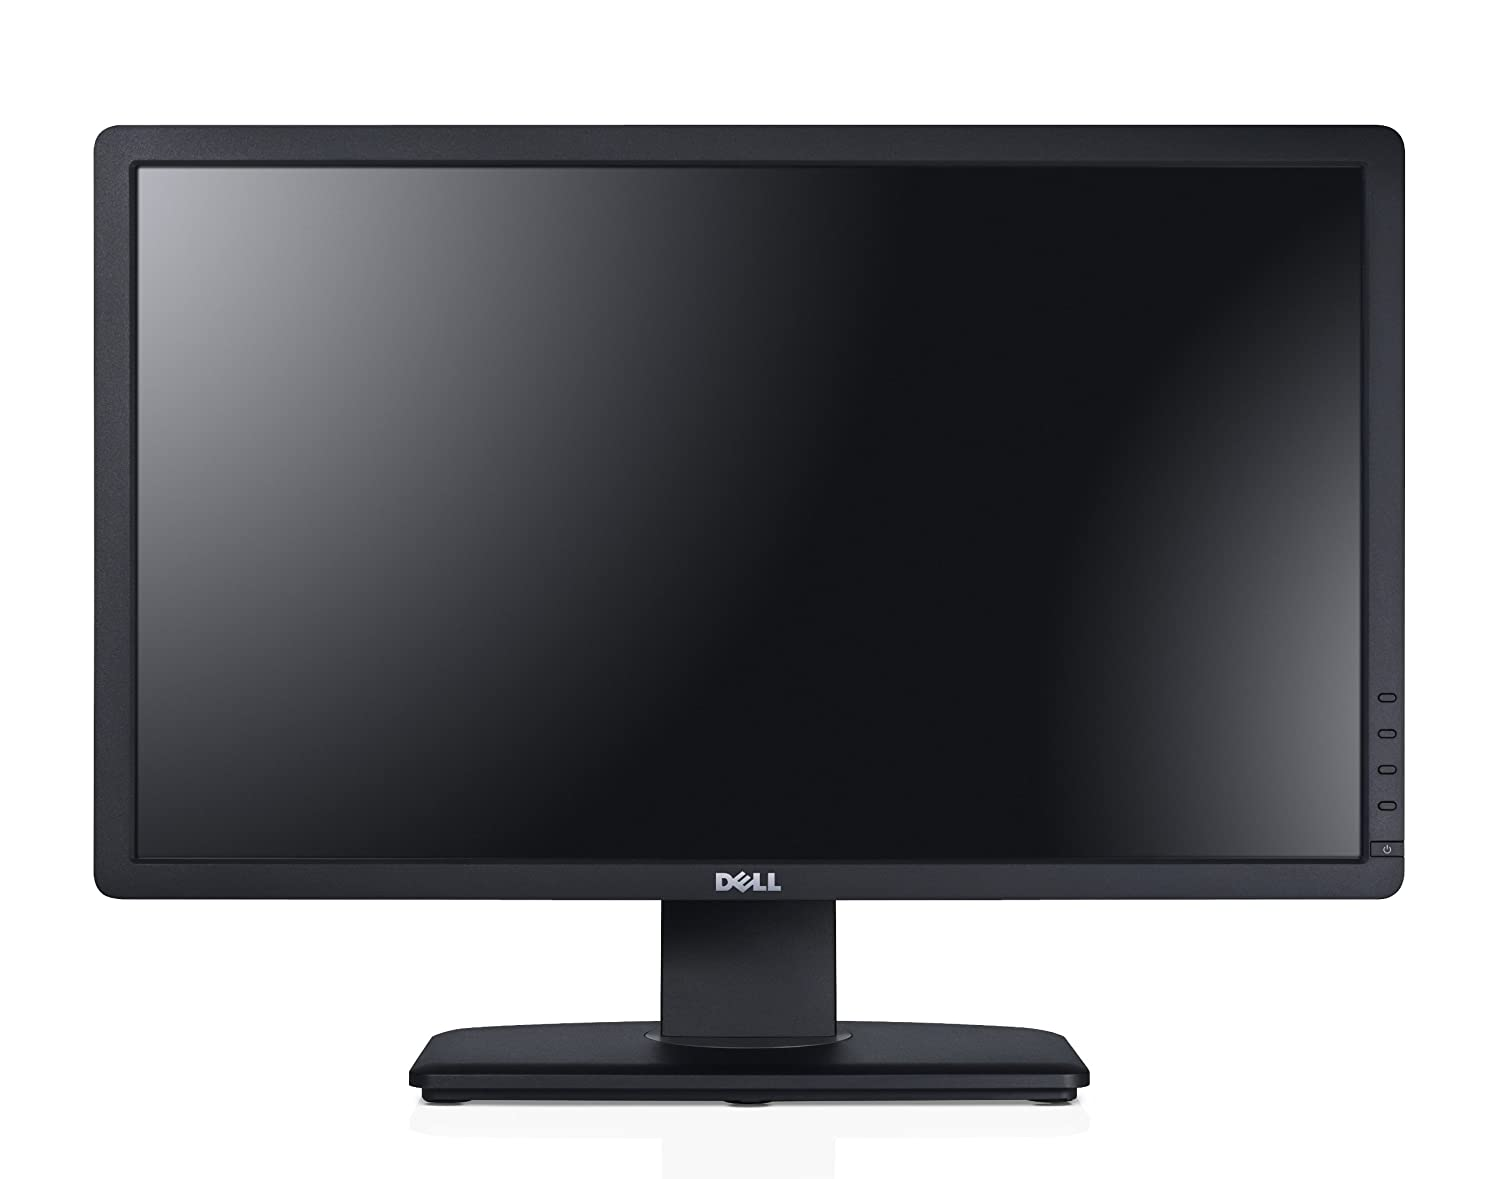 Dell UltraSharp U2312HM 23″ IPS LED LCD Monitor – 16:9 – 8 ms $197.99